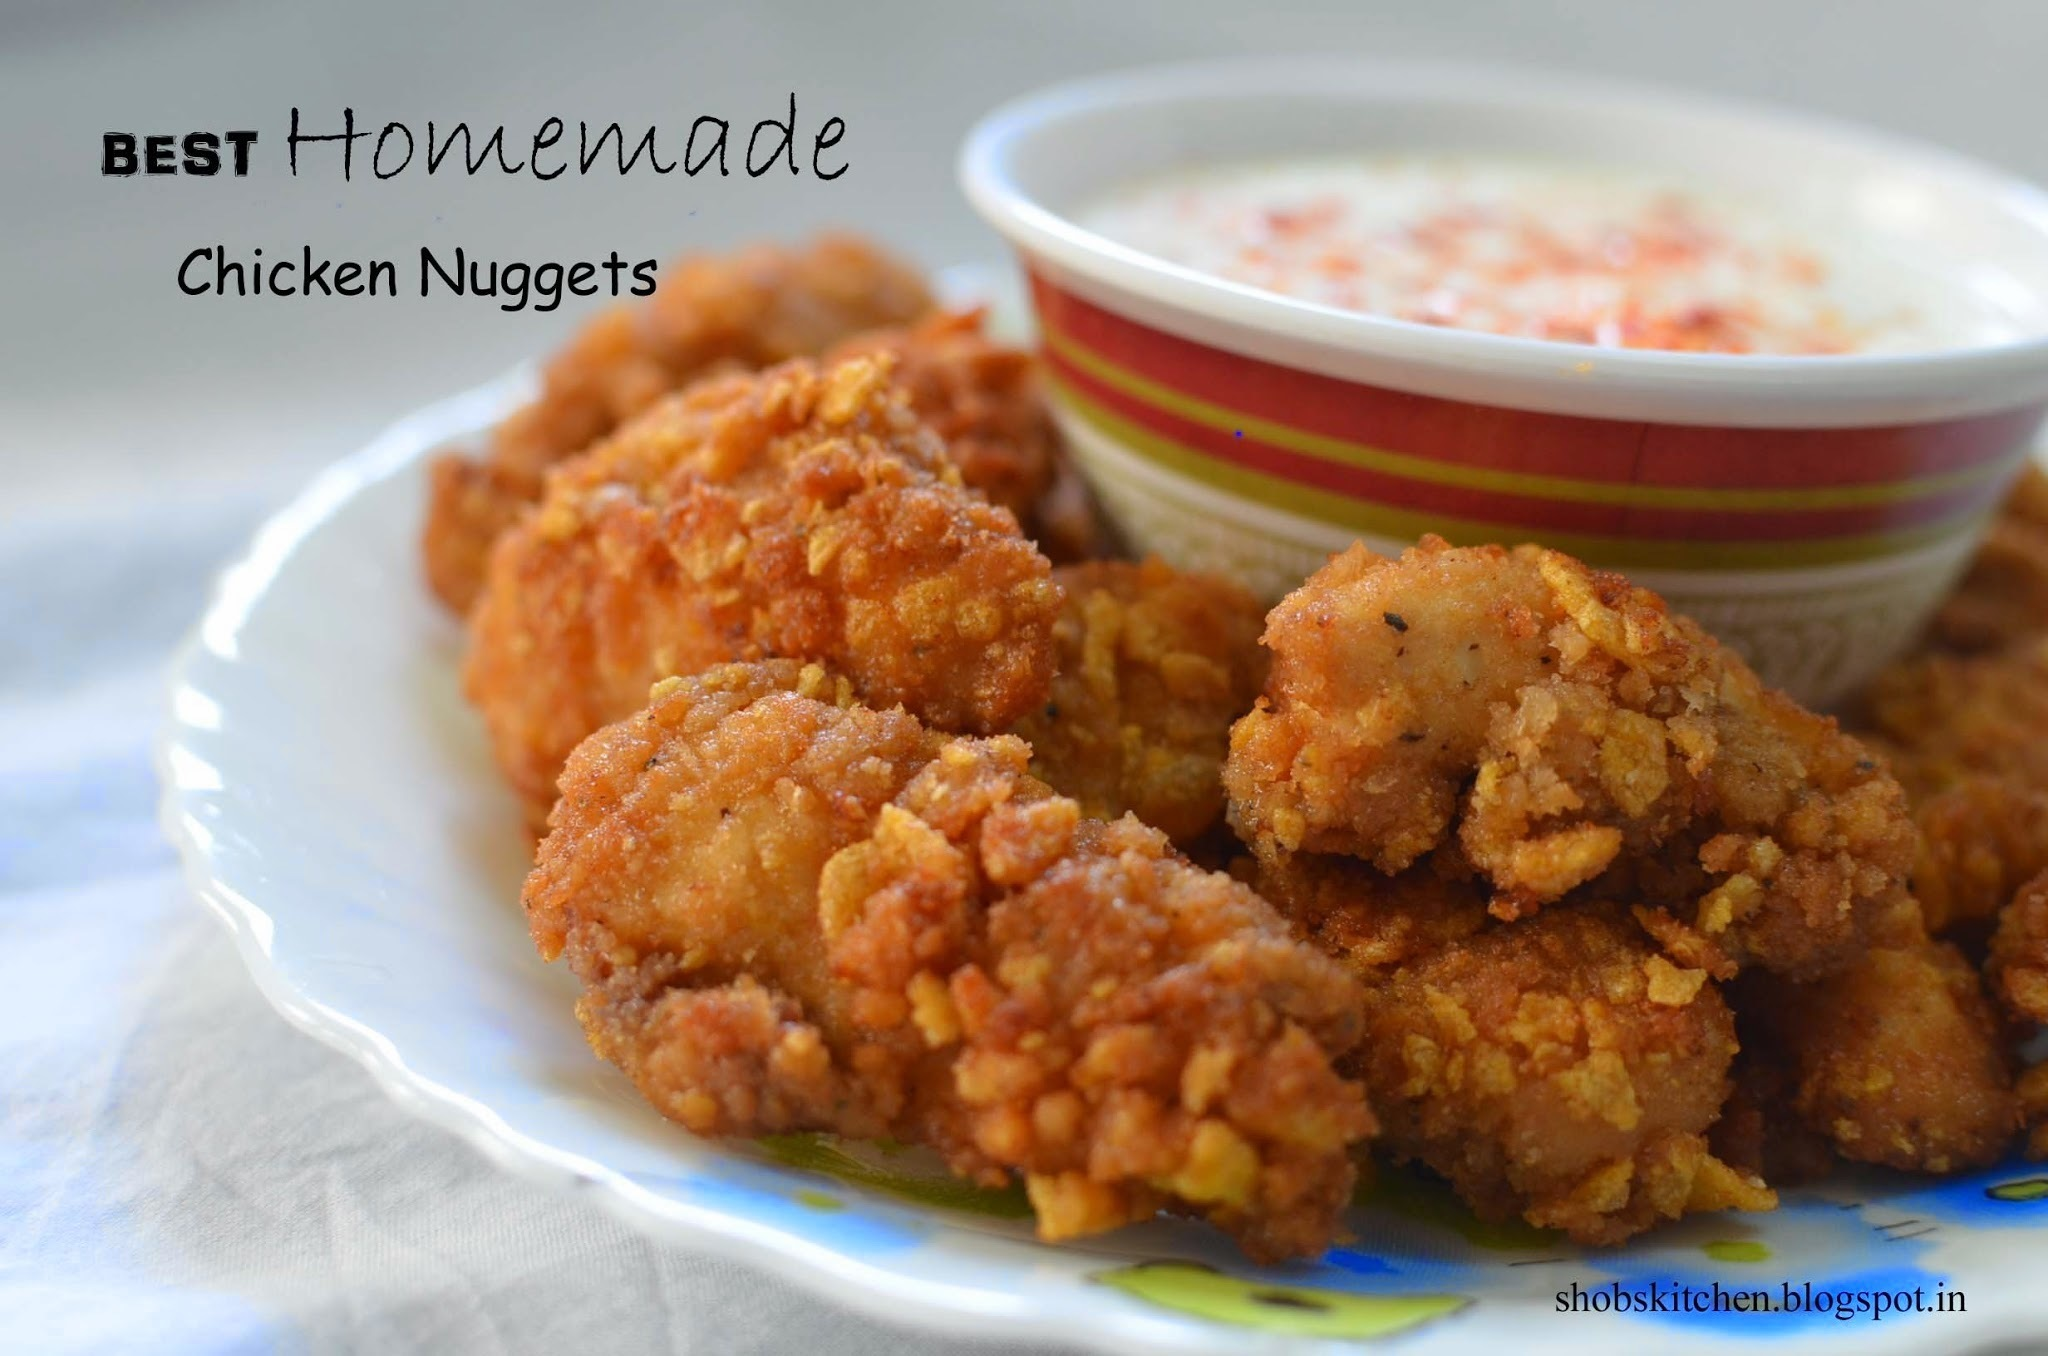 Best Homemade Chicken Nuggets